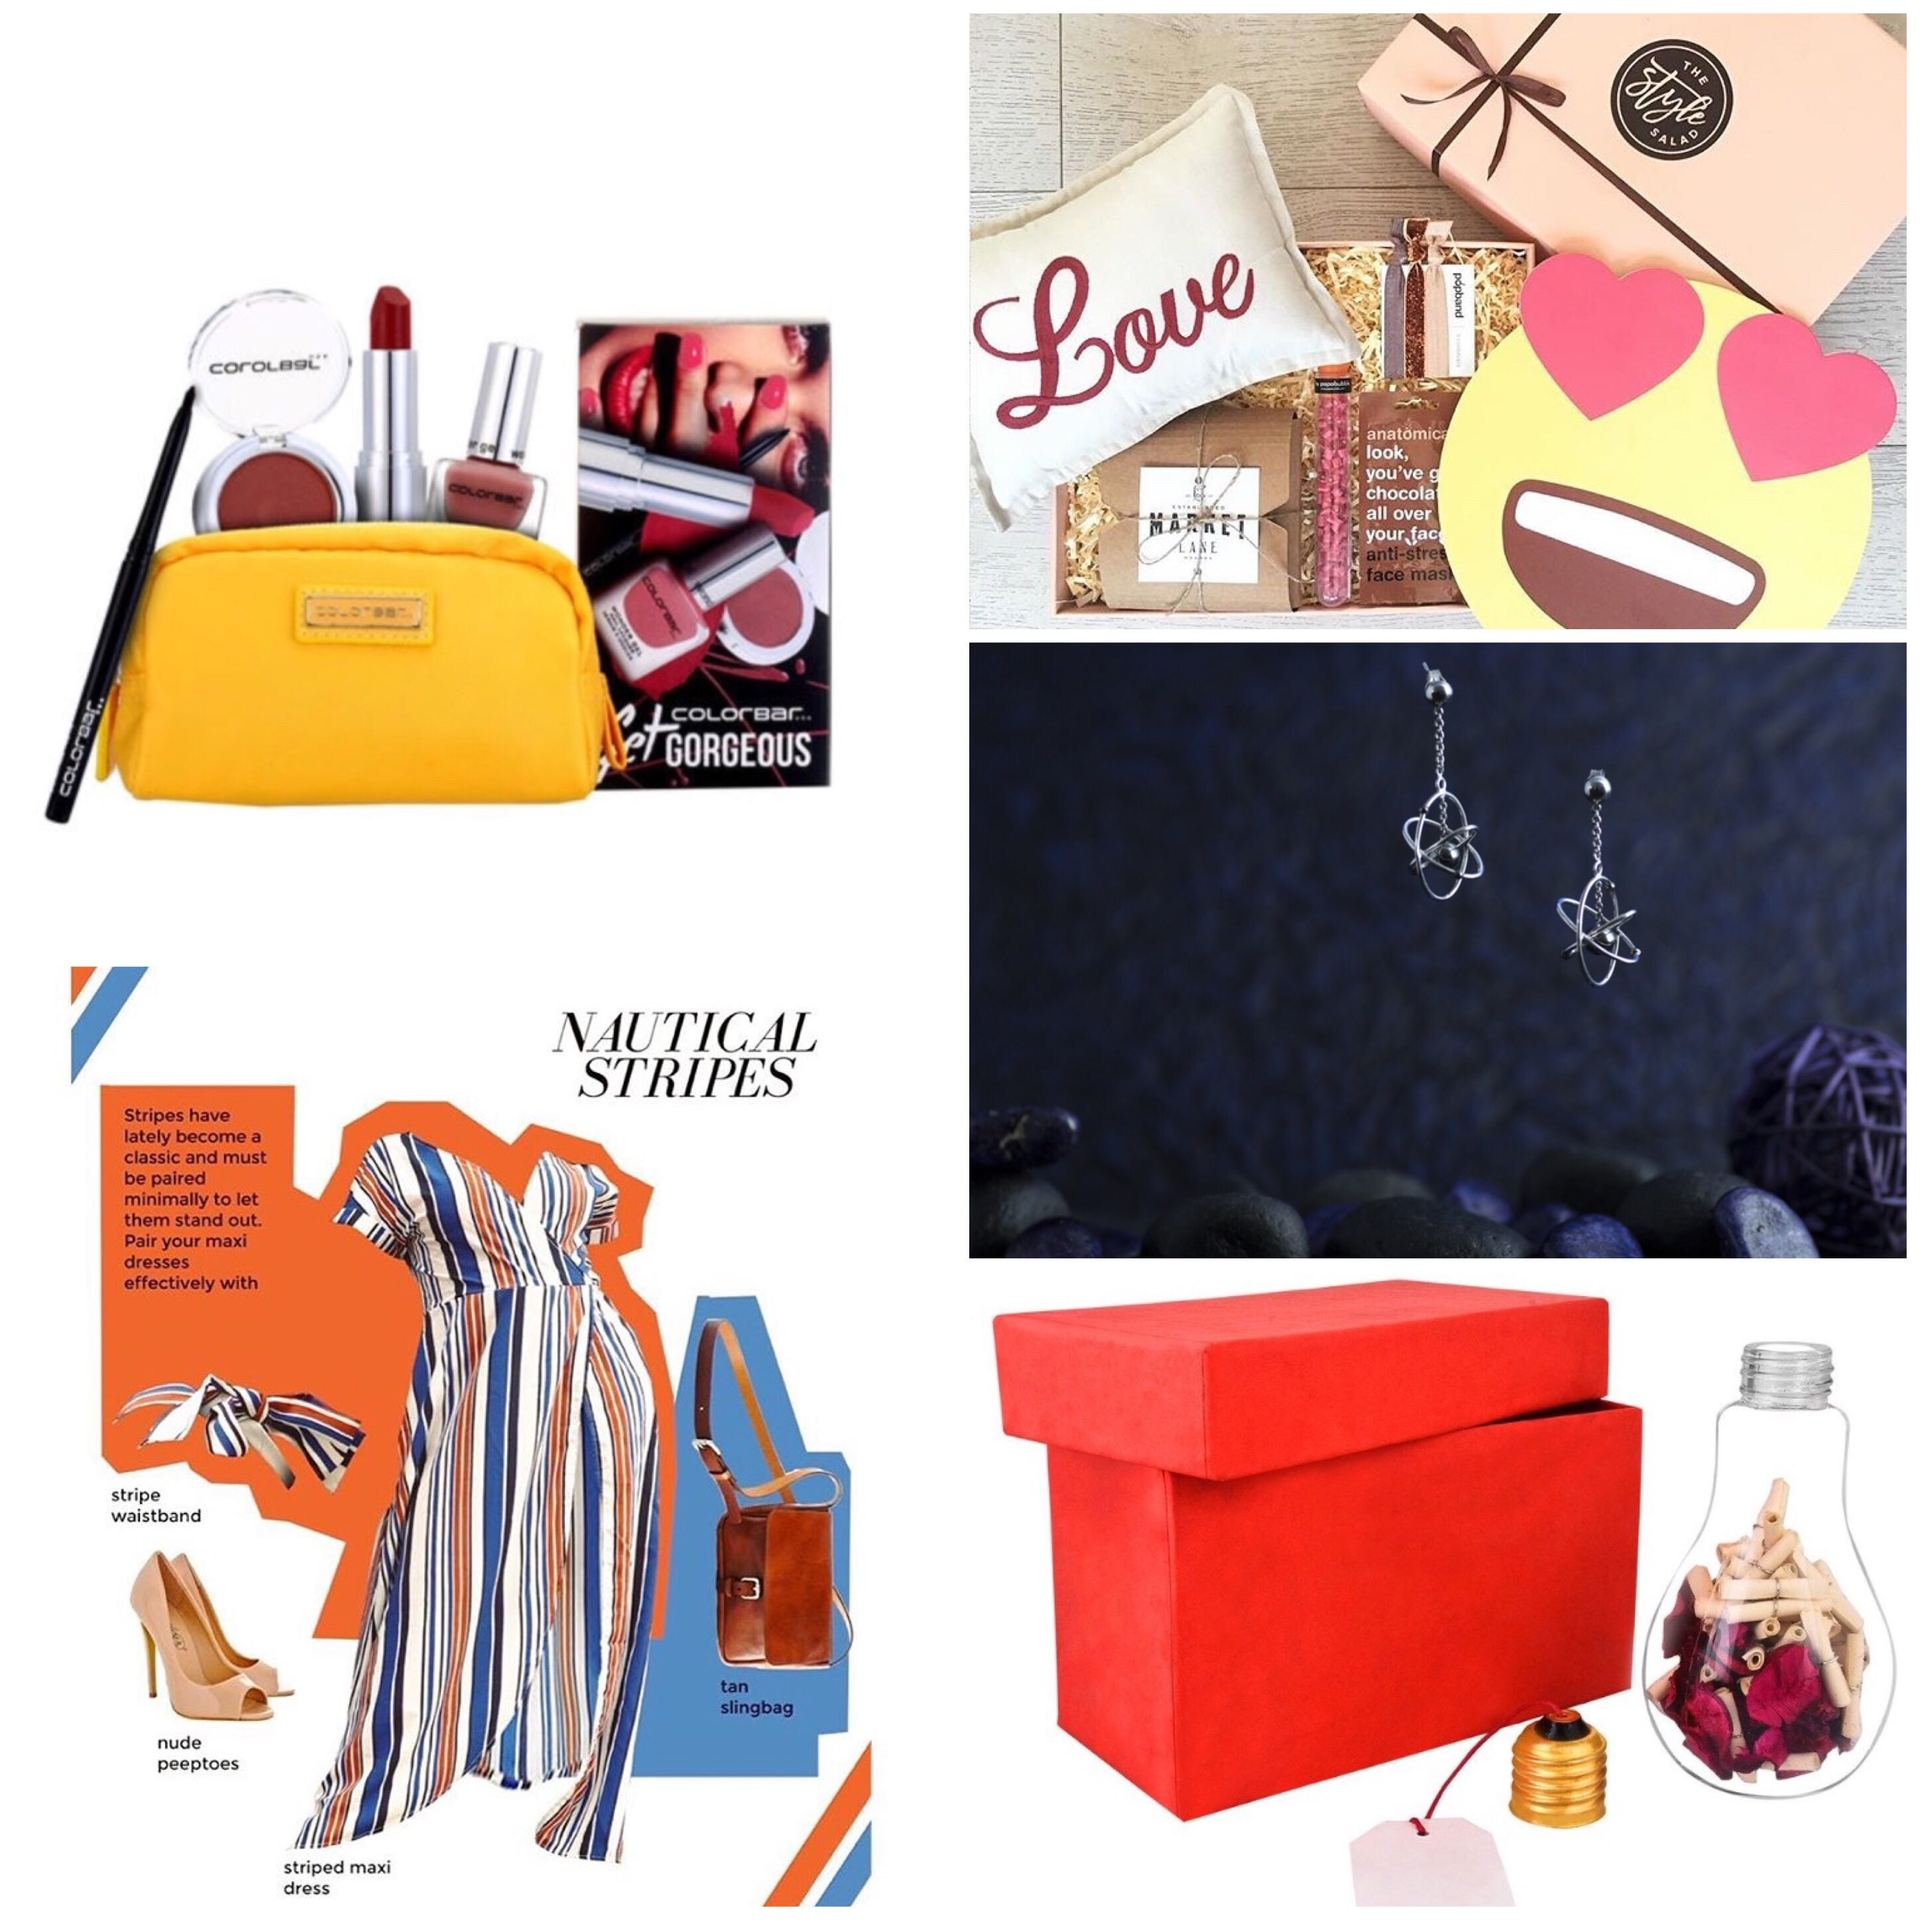 5 Unique & Innovative Gift Ideas For Valentine's Day Which Will Leave Her Impressed! image